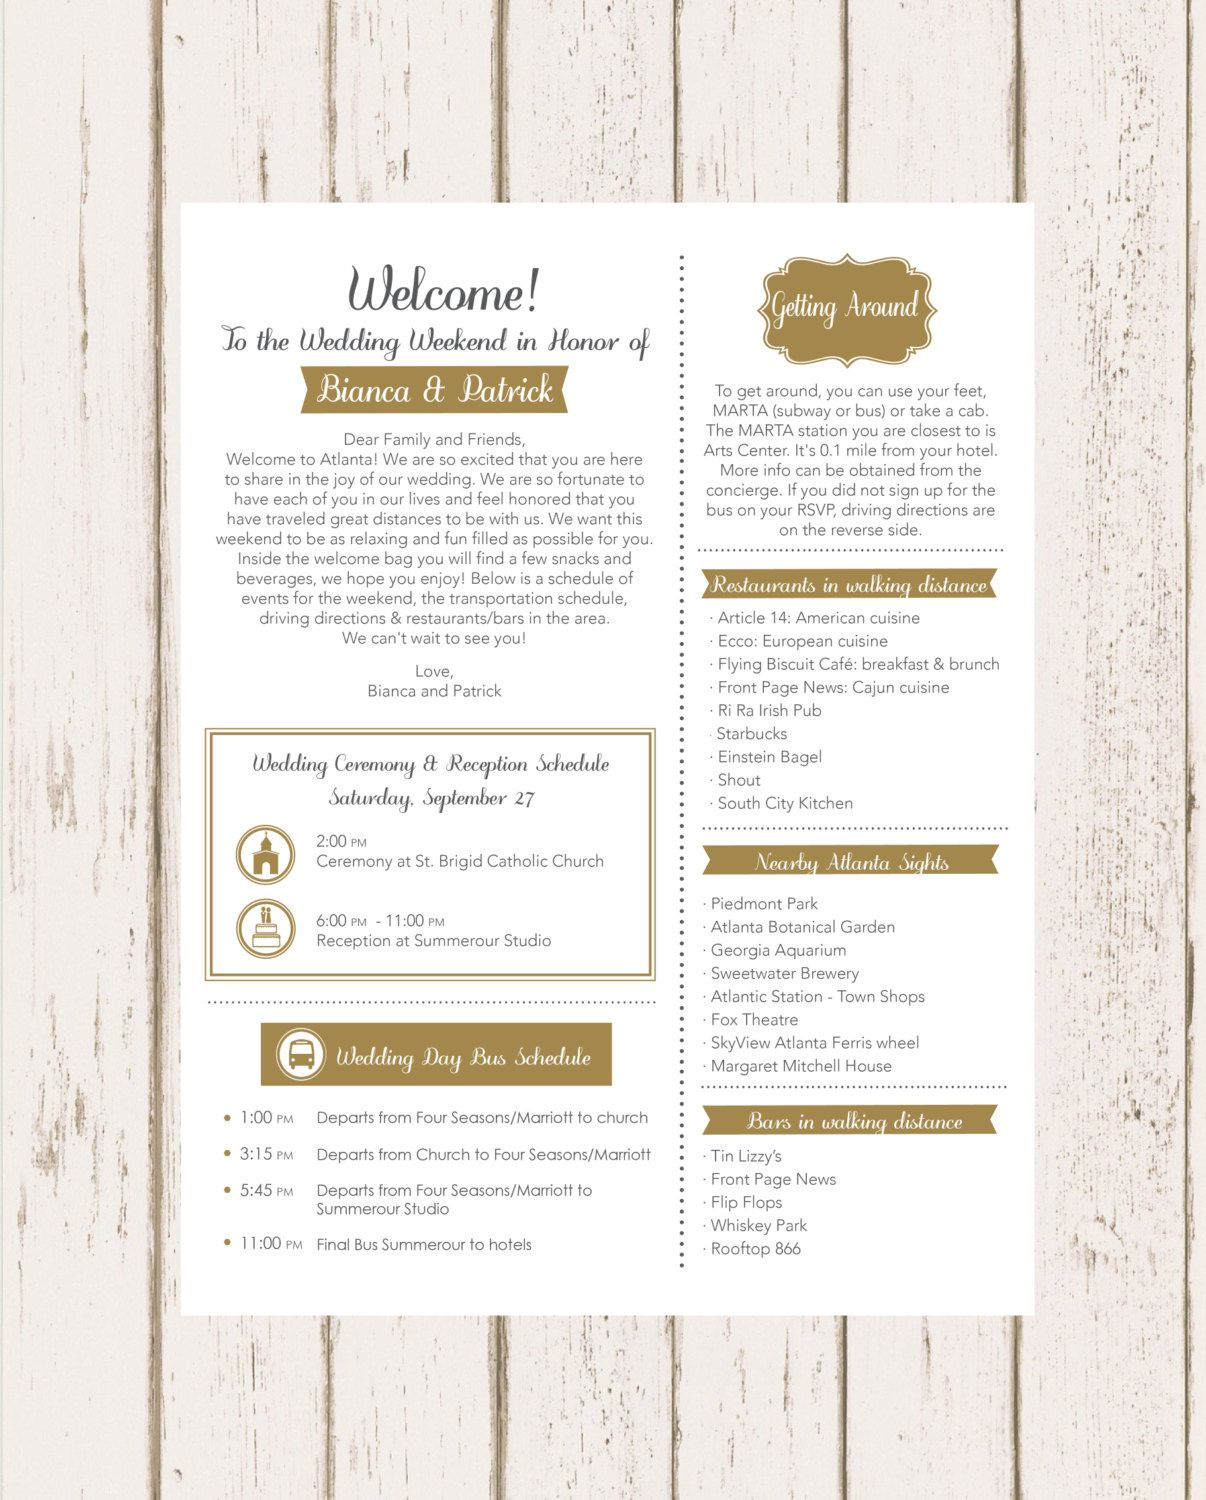 Wedding welcome letter template free spiritdancerdesigns Choice Image